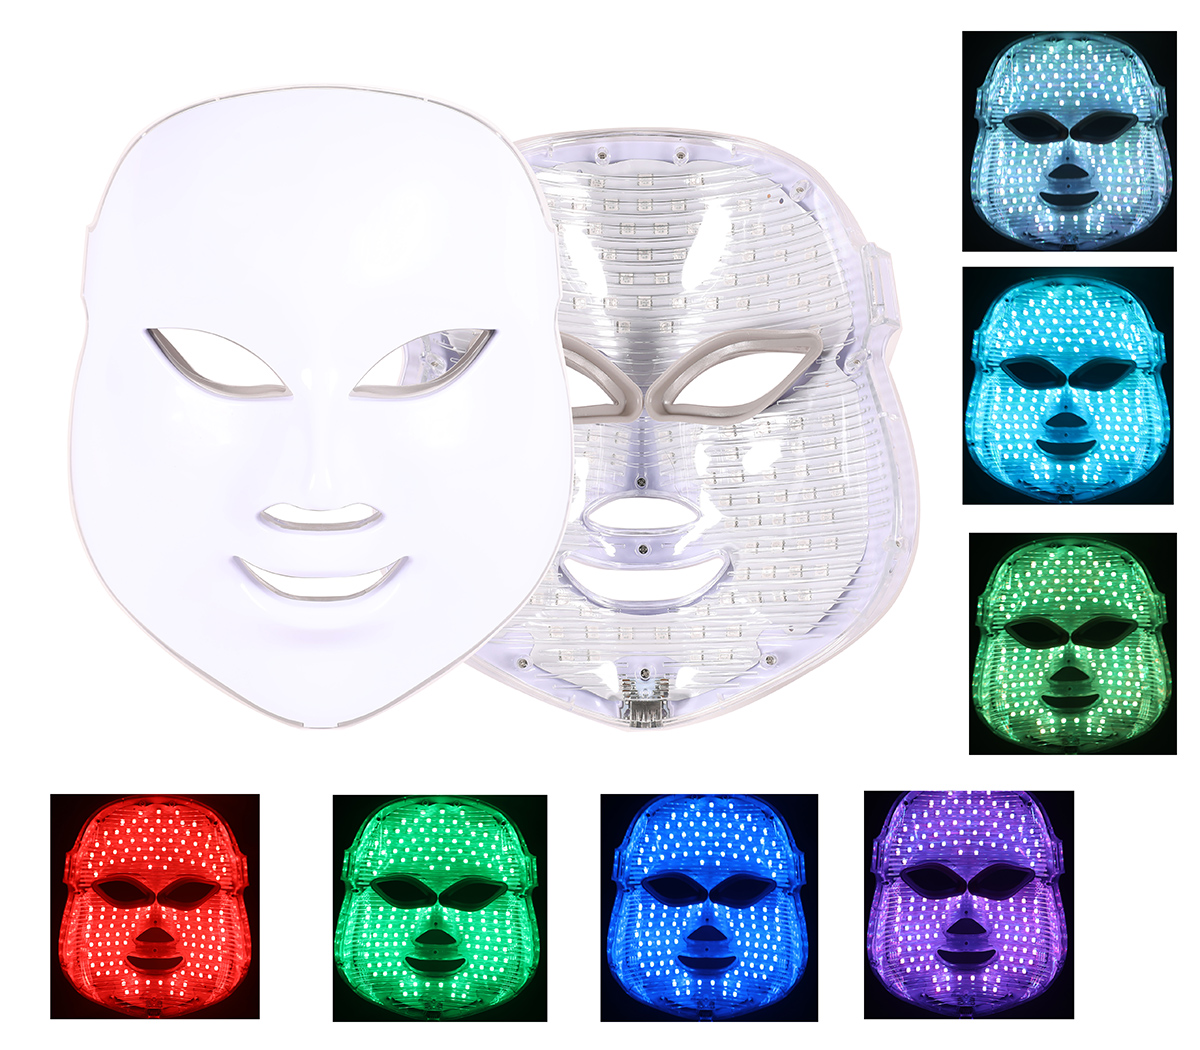 Photon LED Facial Mask Therapy 7 Colors Light Skin Care Rejuvenation Wrinkle Acne Removal Face Beauty Spa